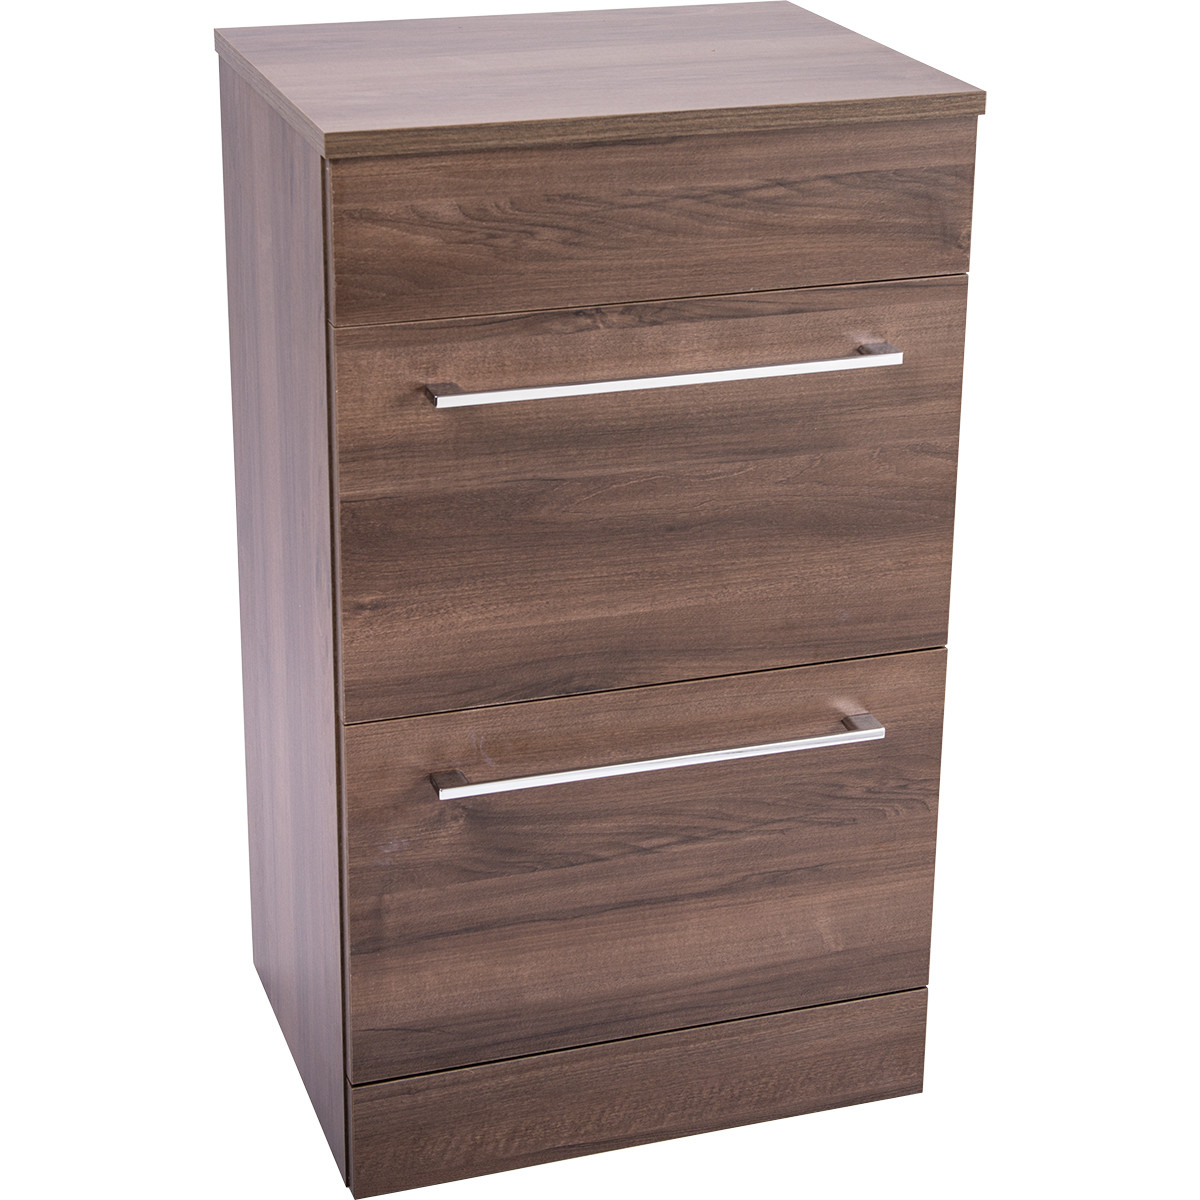 Napoli Walnut 2 Drawer 500 Unit & Top